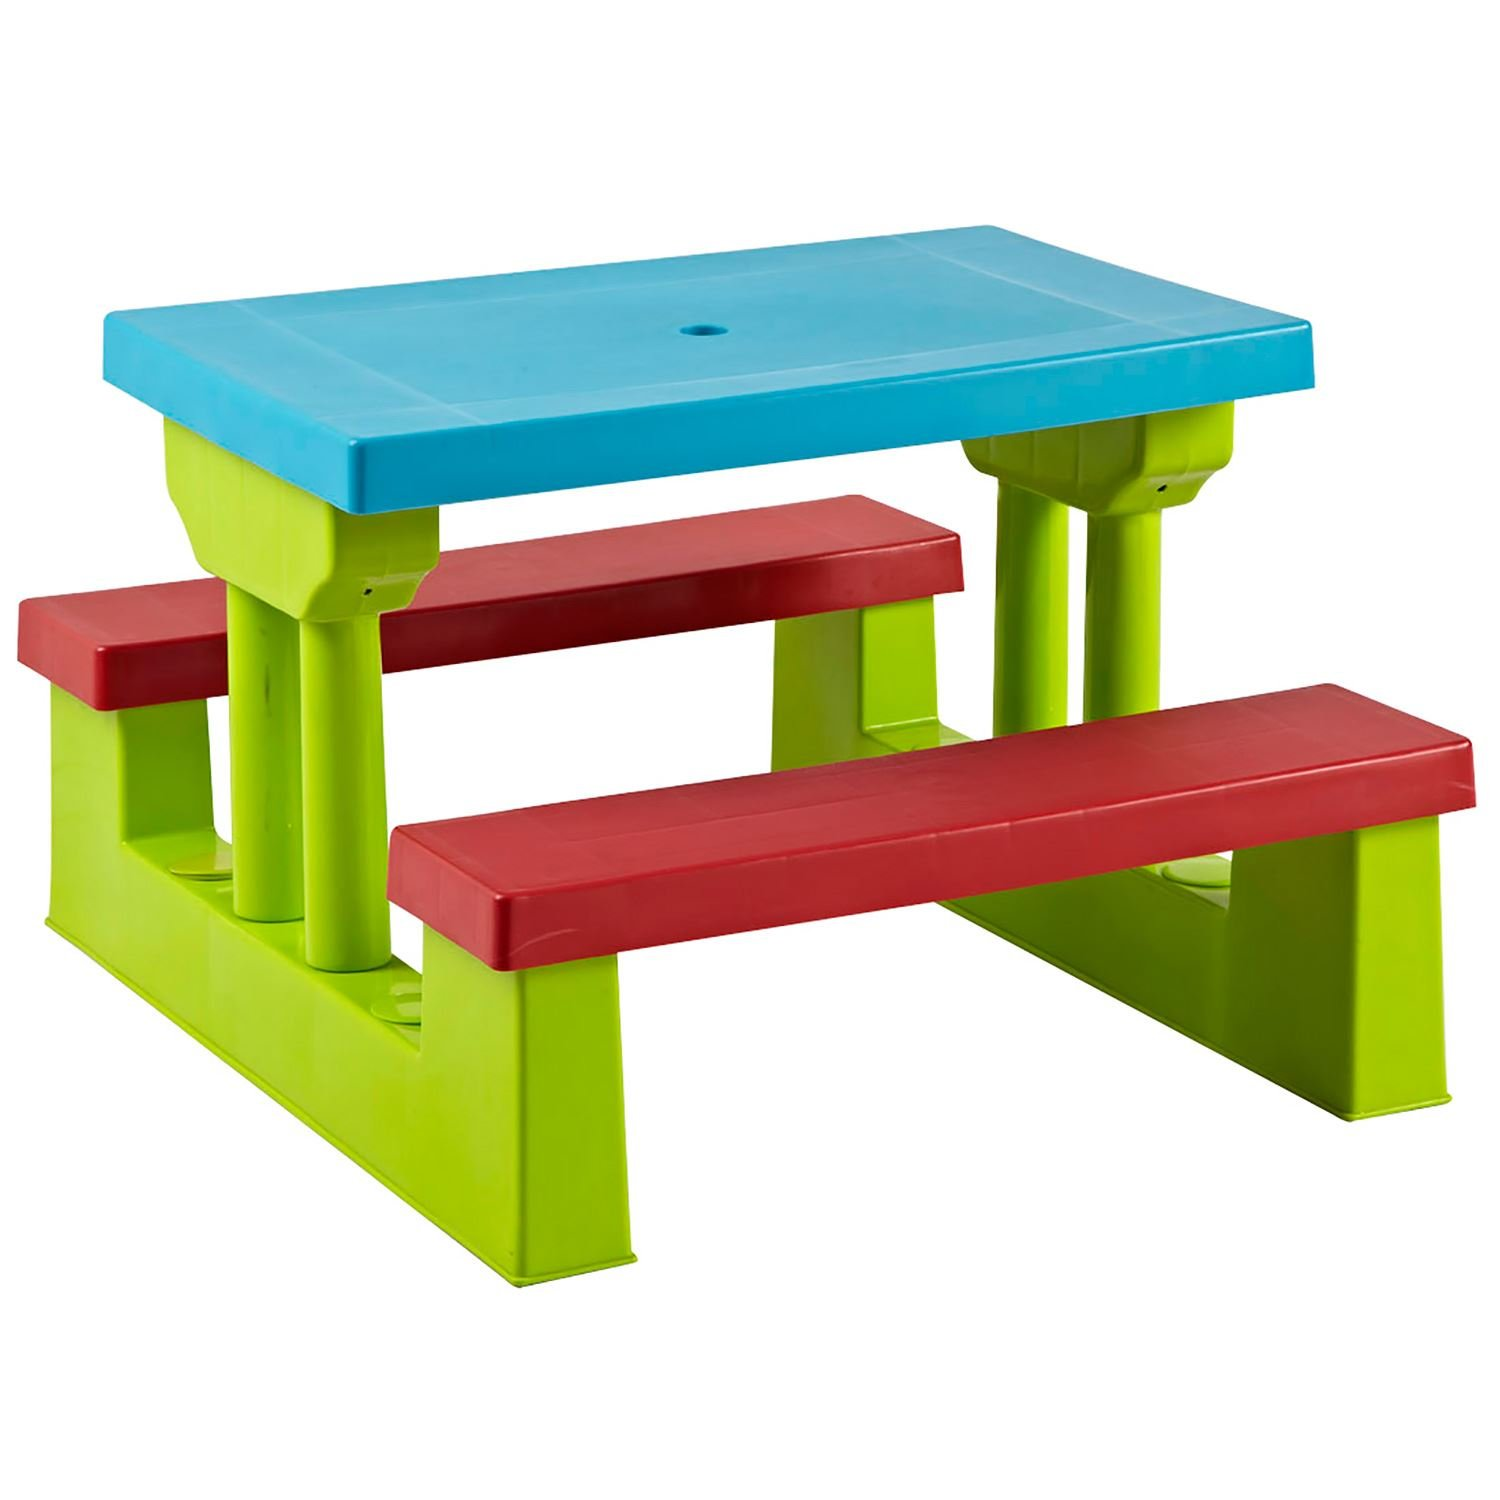 Amazing Parkland Colourful Kids Children Picnic Table U0026 Bench Set: Amazon.co.uk:  Garden U0026 Outdoors